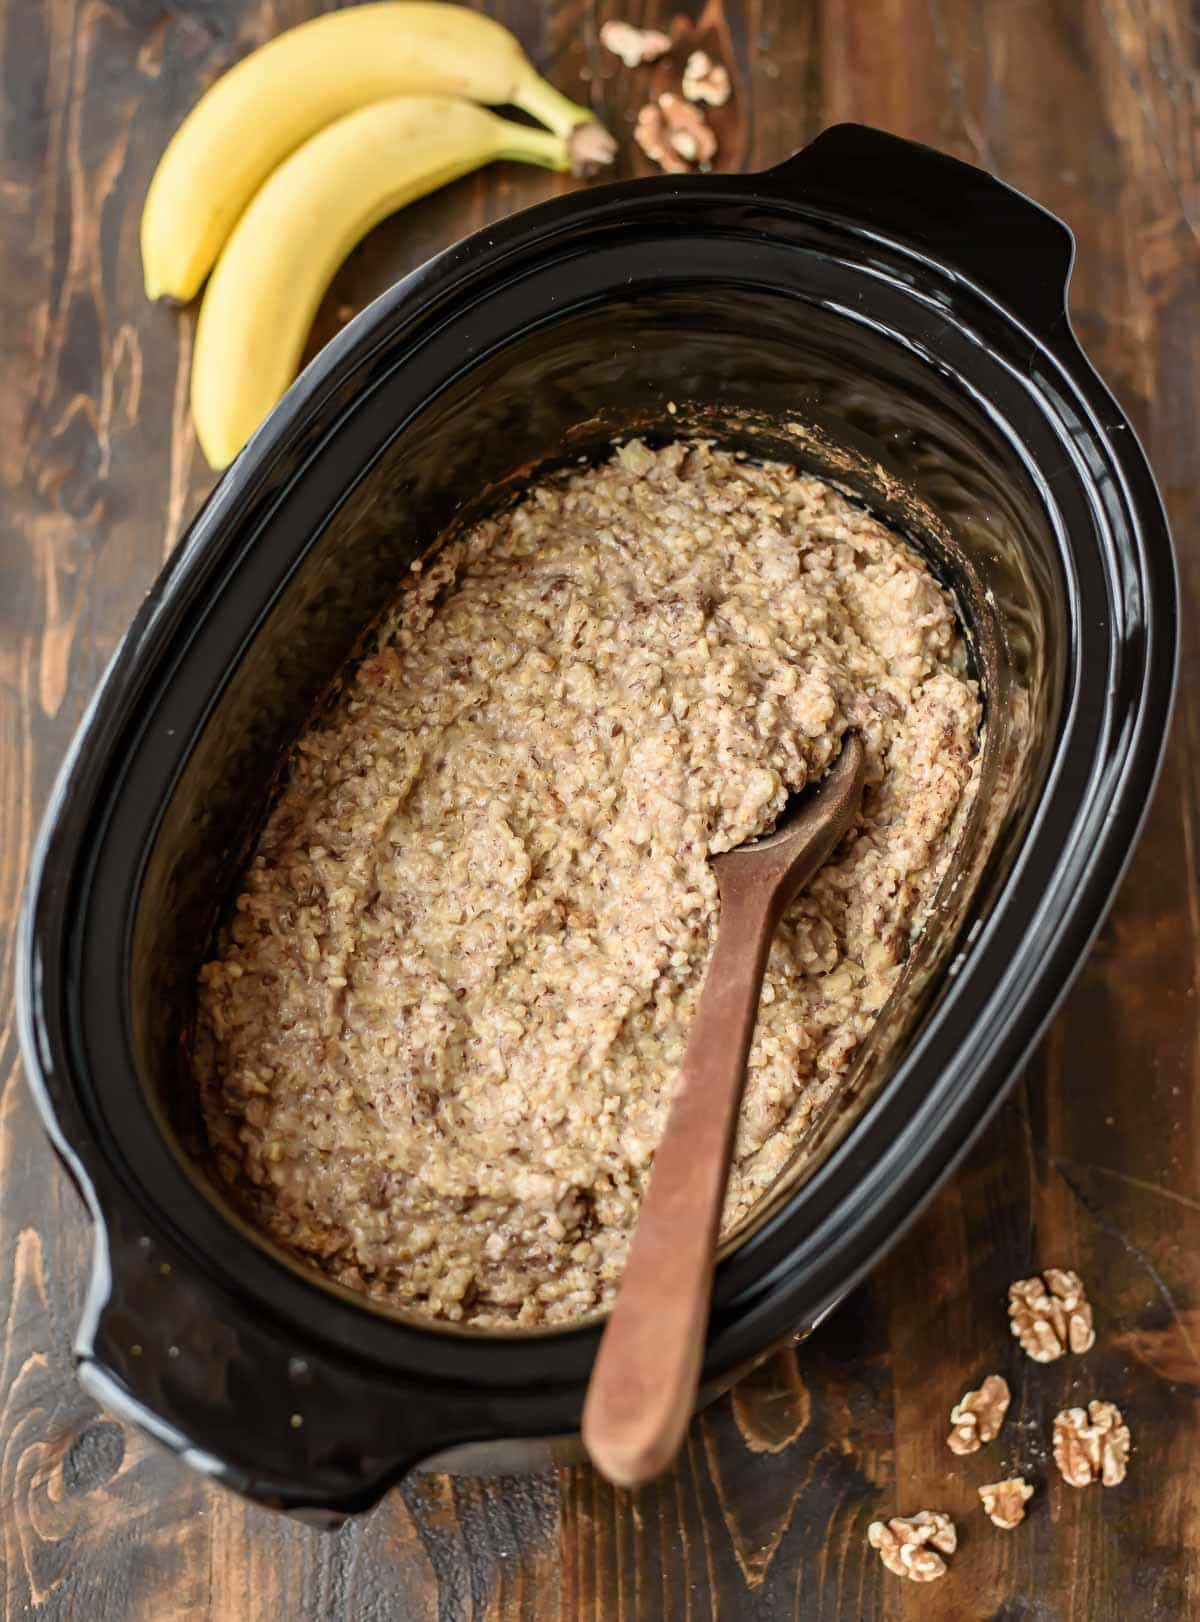 slow cooker full of cooked overnight steel cut oats